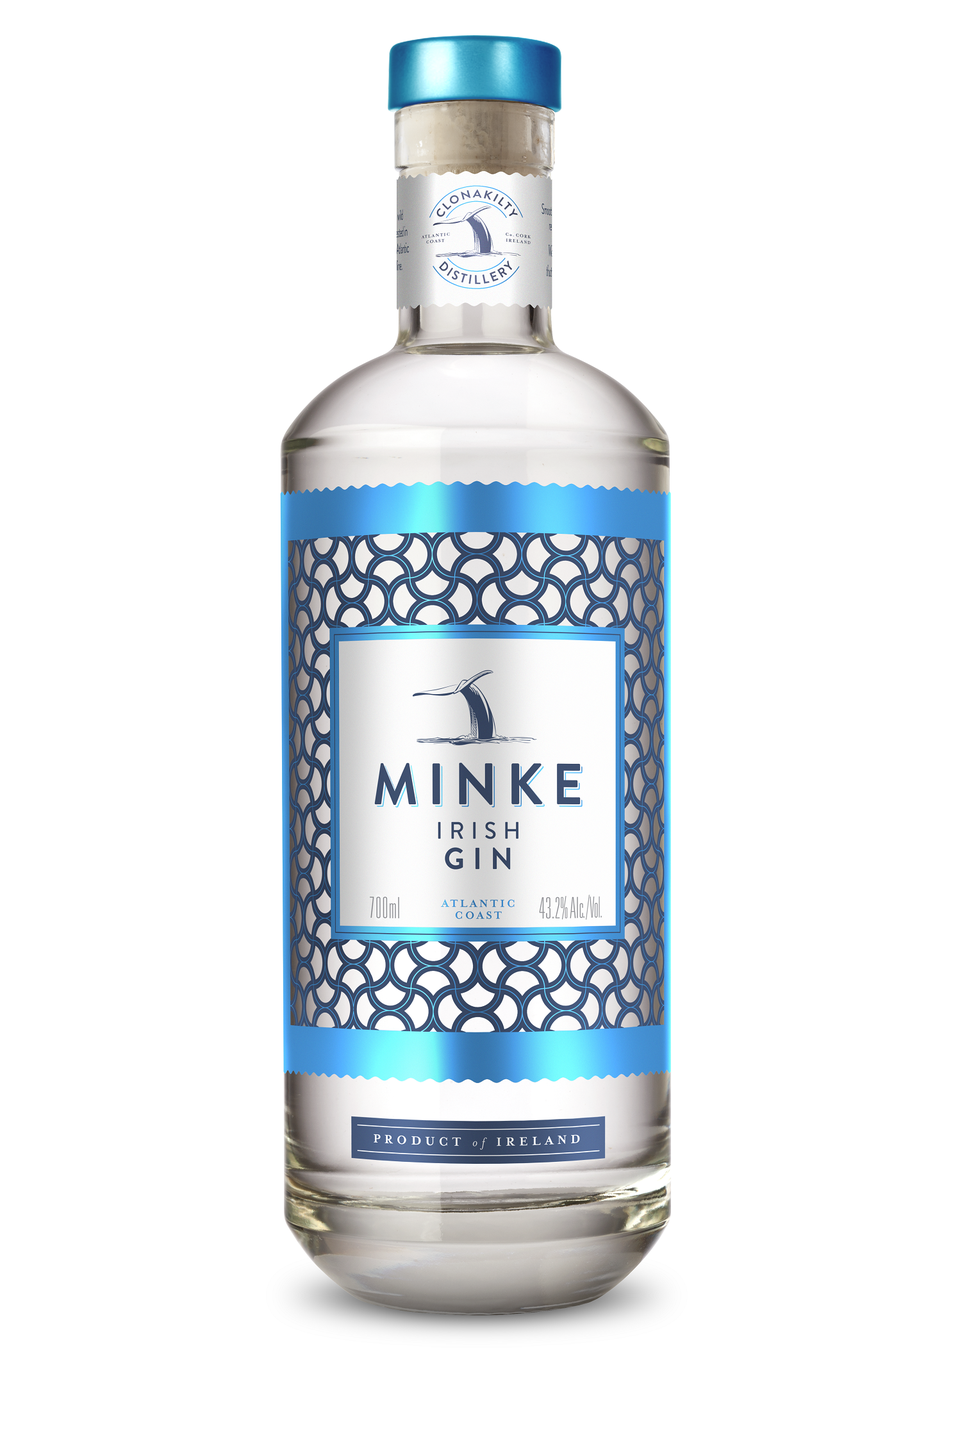 """<p>From the award-winning family-run Irish Distillers Clonakilty, <a href=""""https://clonakiltydistillery.ie/"""" rel=""""nofollow noopener"""" target=""""_blank"""" data-ylk=""""slk:Minke"""" class=""""link rapid-noclick-resp"""">Minke</a> is inspired by the Minke Whale, which swim off the Atlantic coastline. On the sea cliffs, the distillers sustainably harvest rock samphire, the unique botanical that gives Minke gin its distinctive flavour. The base spirit is derived from whey, produced from the family's 9th generation farm near Galley Head Lighthouse. </p><p>Pair it with a light <a href=""""https://fever-tree.com/en_GB/products/refreshingly-light-indian-tonic-water"""" rel=""""nofollow noopener"""" target=""""_blank"""" data-ylk=""""slk:Fever-Tree tonic"""" class=""""link rapid-noclick-resp"""">Fever-Tree tonic</a> for a classic G&T. The Fever-Tree Light is a traditional tonic that works perfectly with the strong taste of the Minke Gin. Together they work in harmony and create the perfect balance.</p>"""